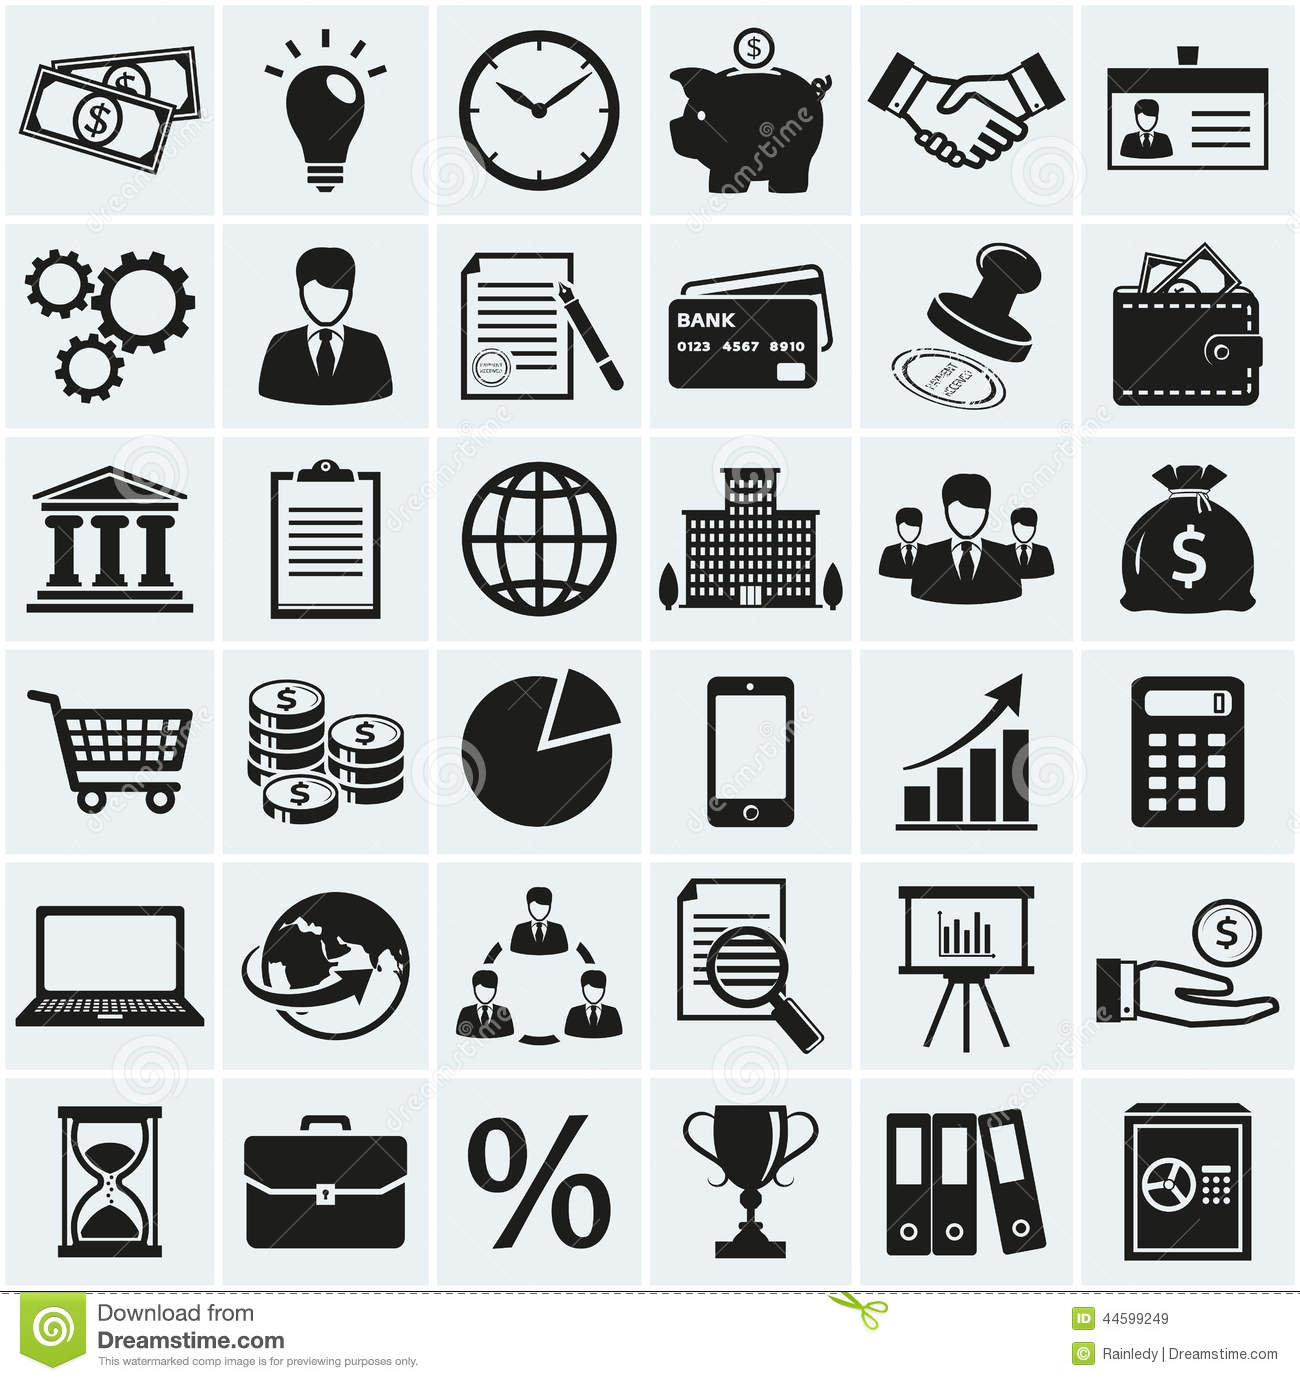 Stock Illustration Business Finance Icons Vector Set Marketing Concept Symbols Collection Silhouette Black Elements Your Design Image44599249 on money bag cartoon